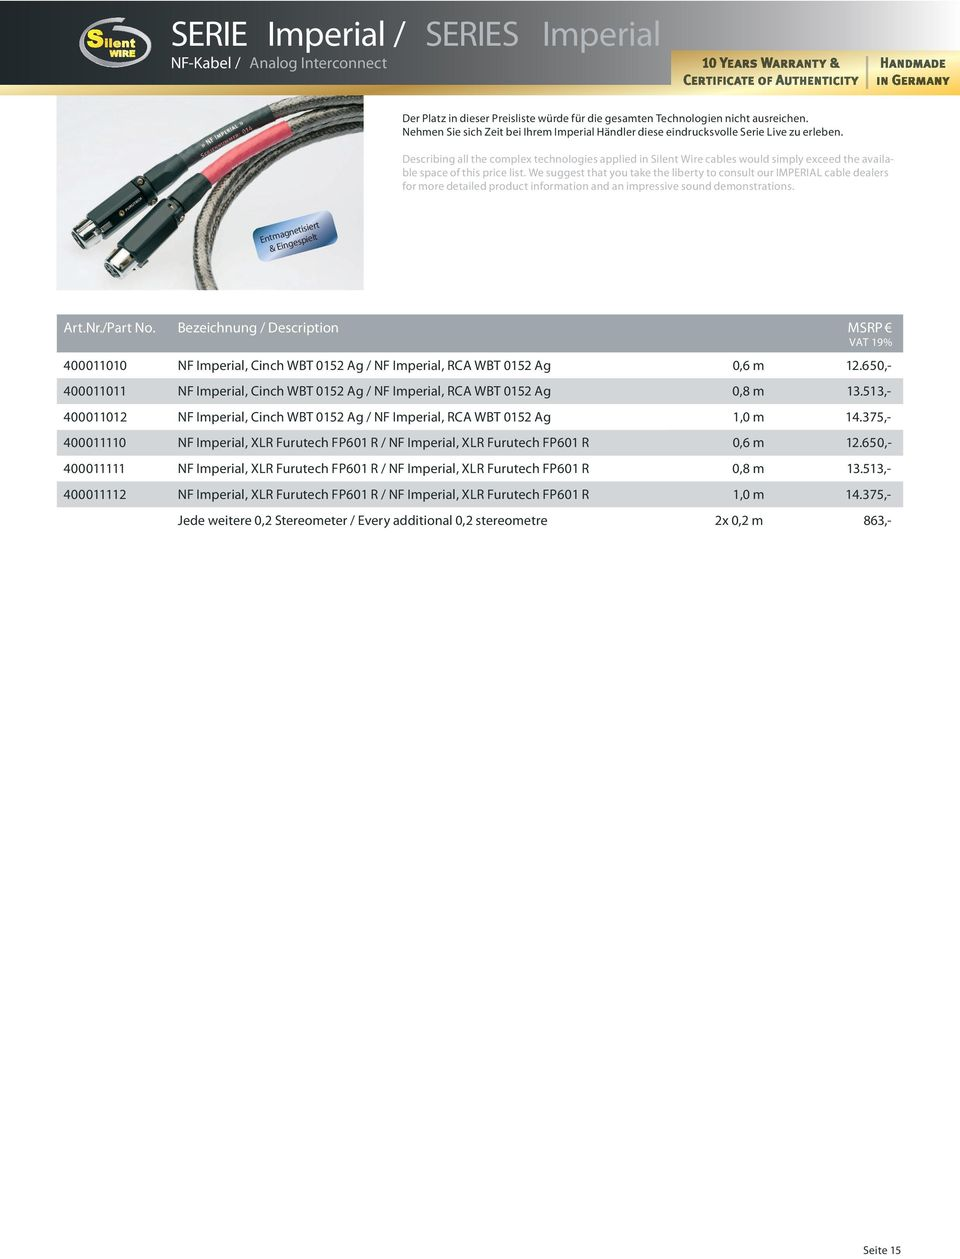 Describing all the complex technologies applied in Silent Wire cables would simply exceed the available space of this price list.